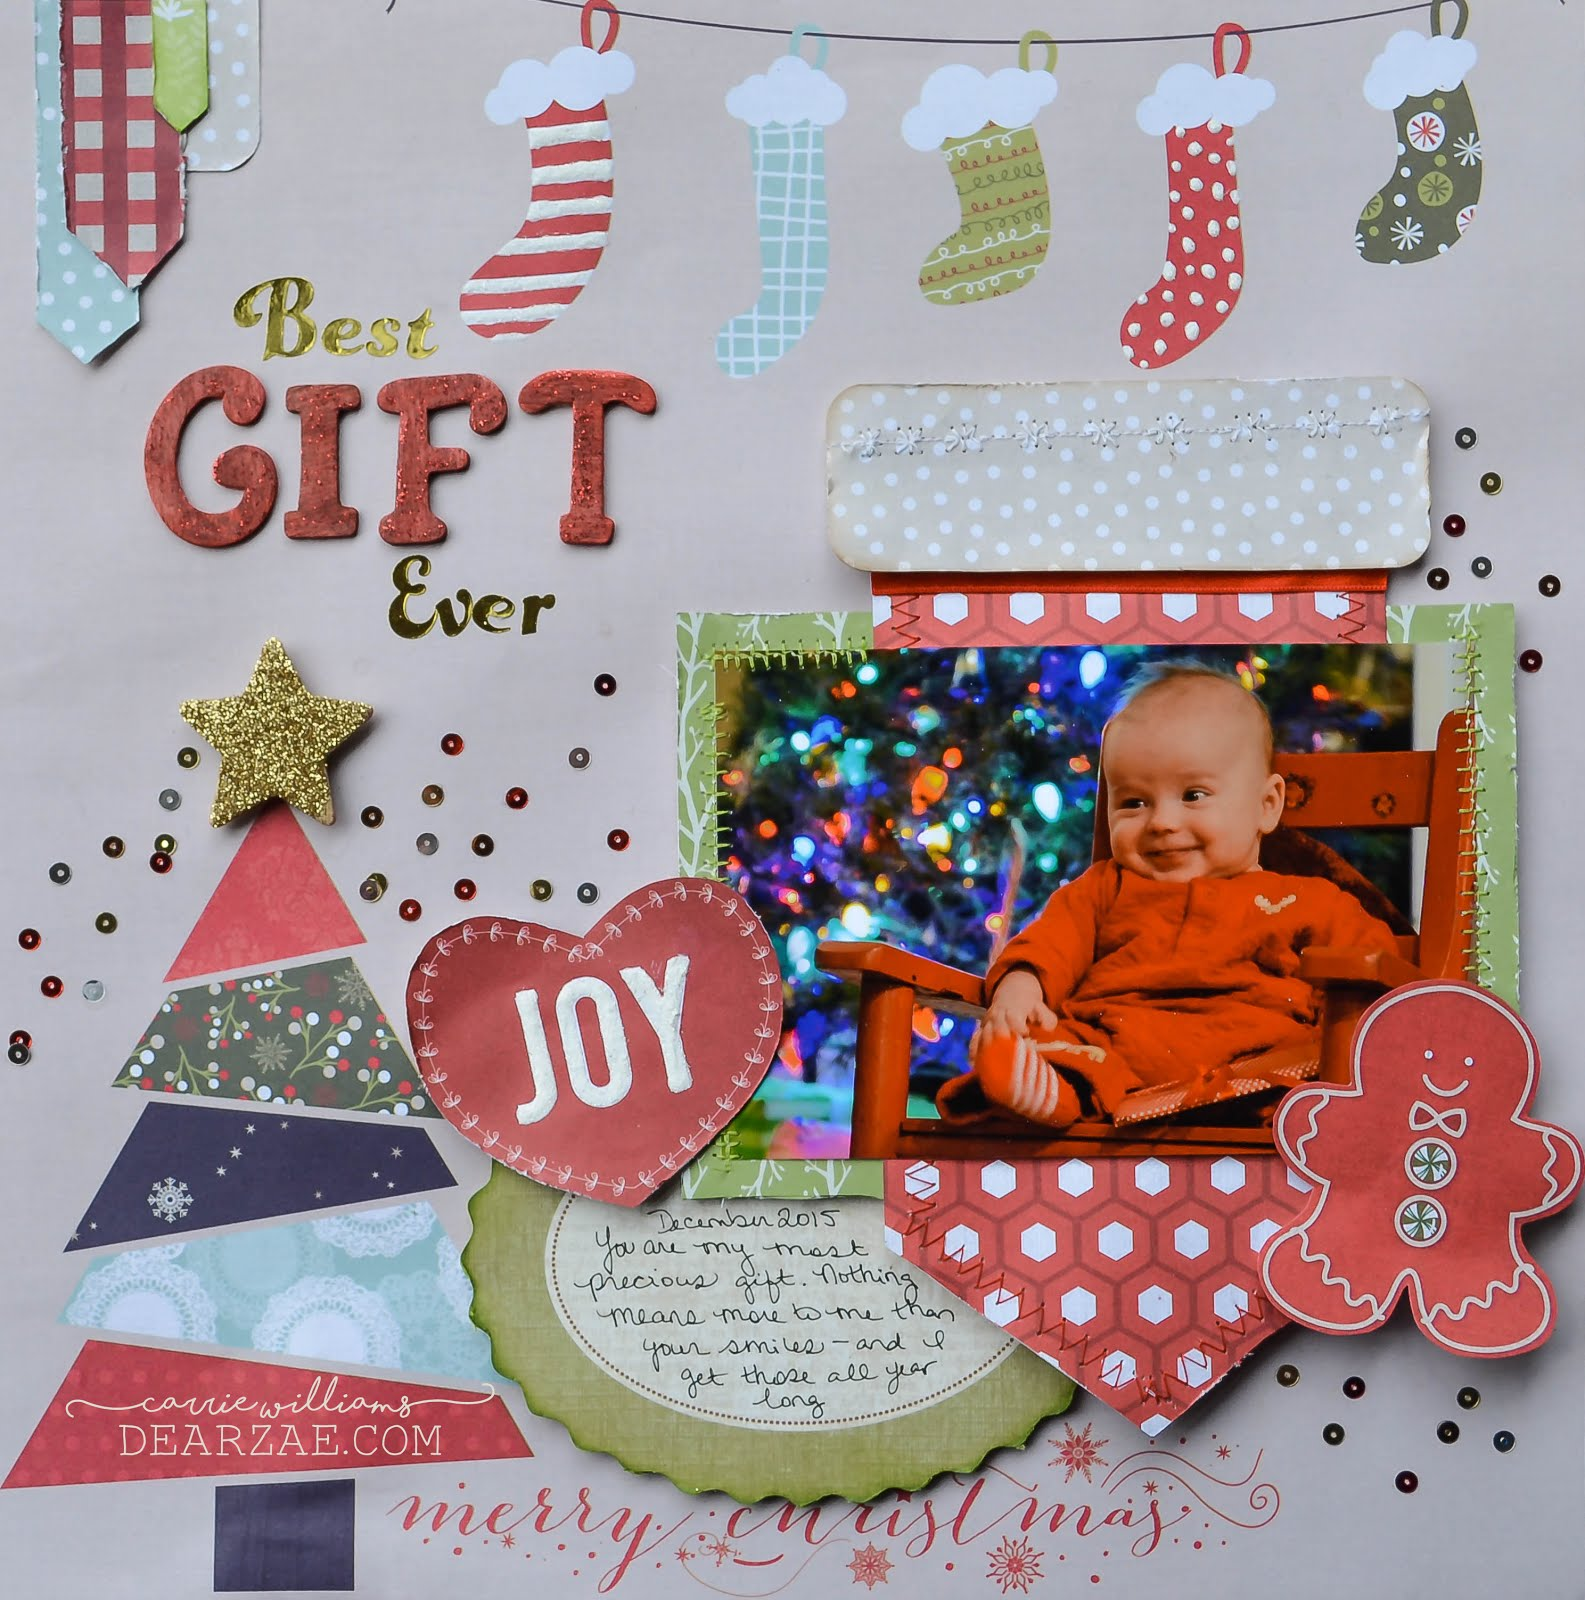 Christmas holiday scrapbook layout in red, green, and cream with stockings, wood alphas, and gold stickers, journal card, sequins, chipboard star, fussy cut heart and gingerbread man